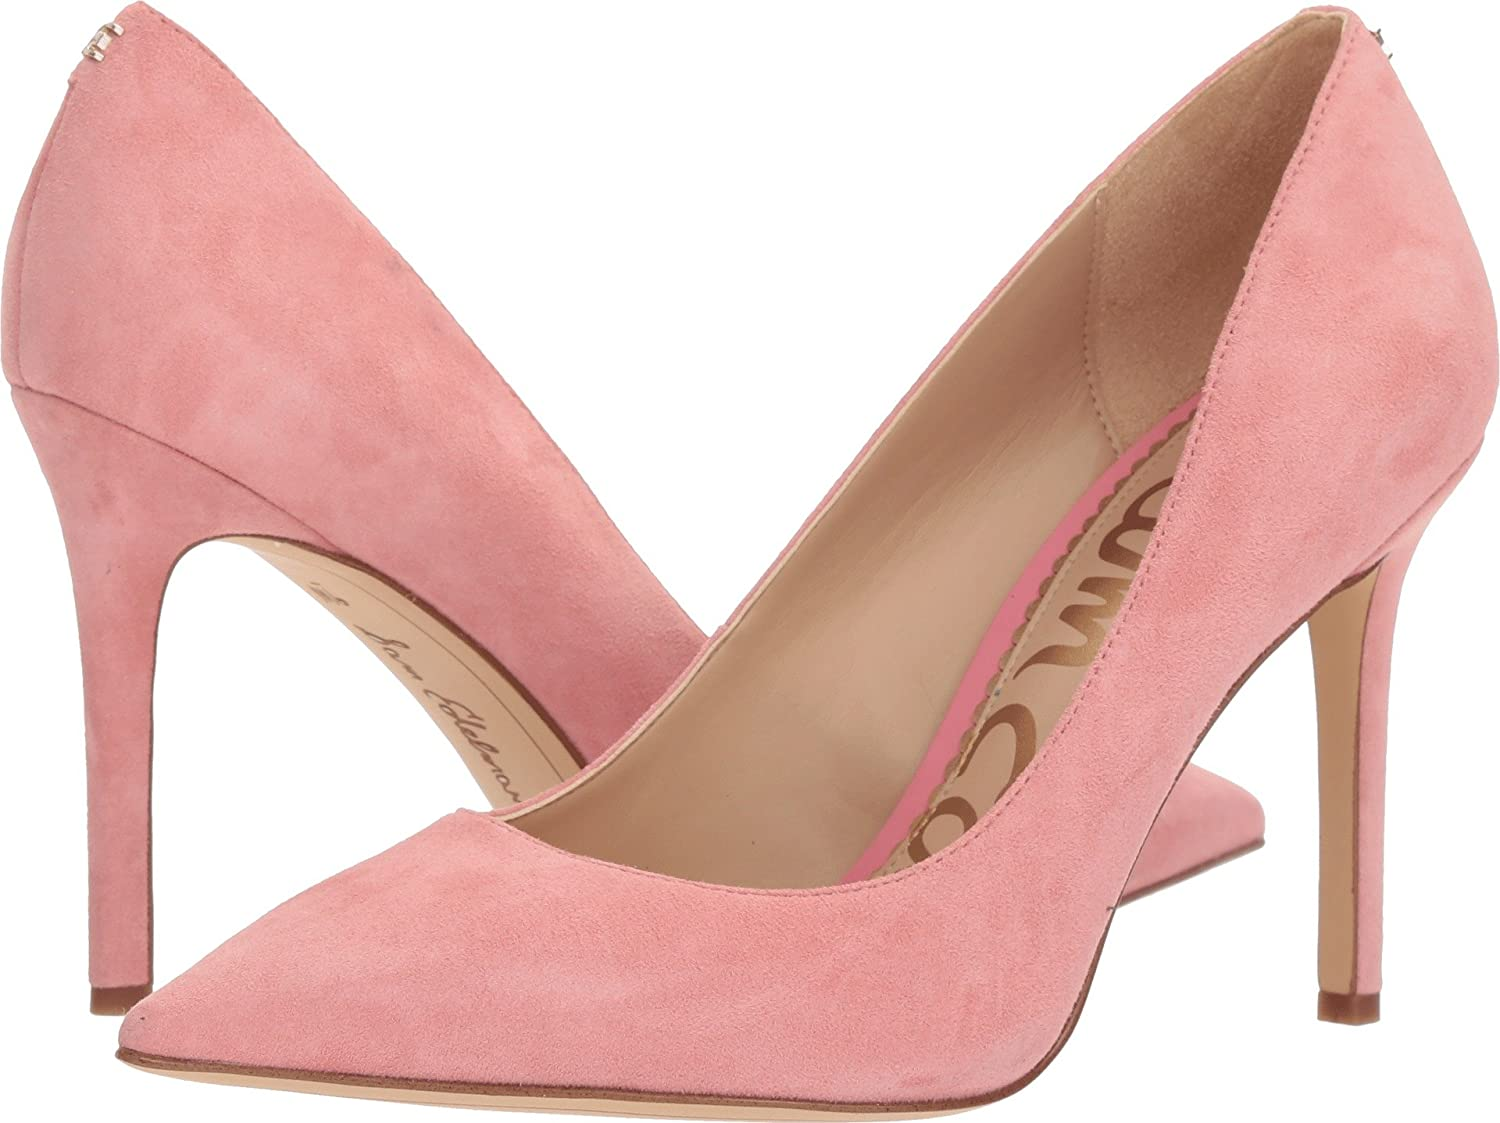 Sam Edelman Women's Hazel Dress Pump B076NY46SG 7 W US|Pink Lemonade Kid Suede Leather